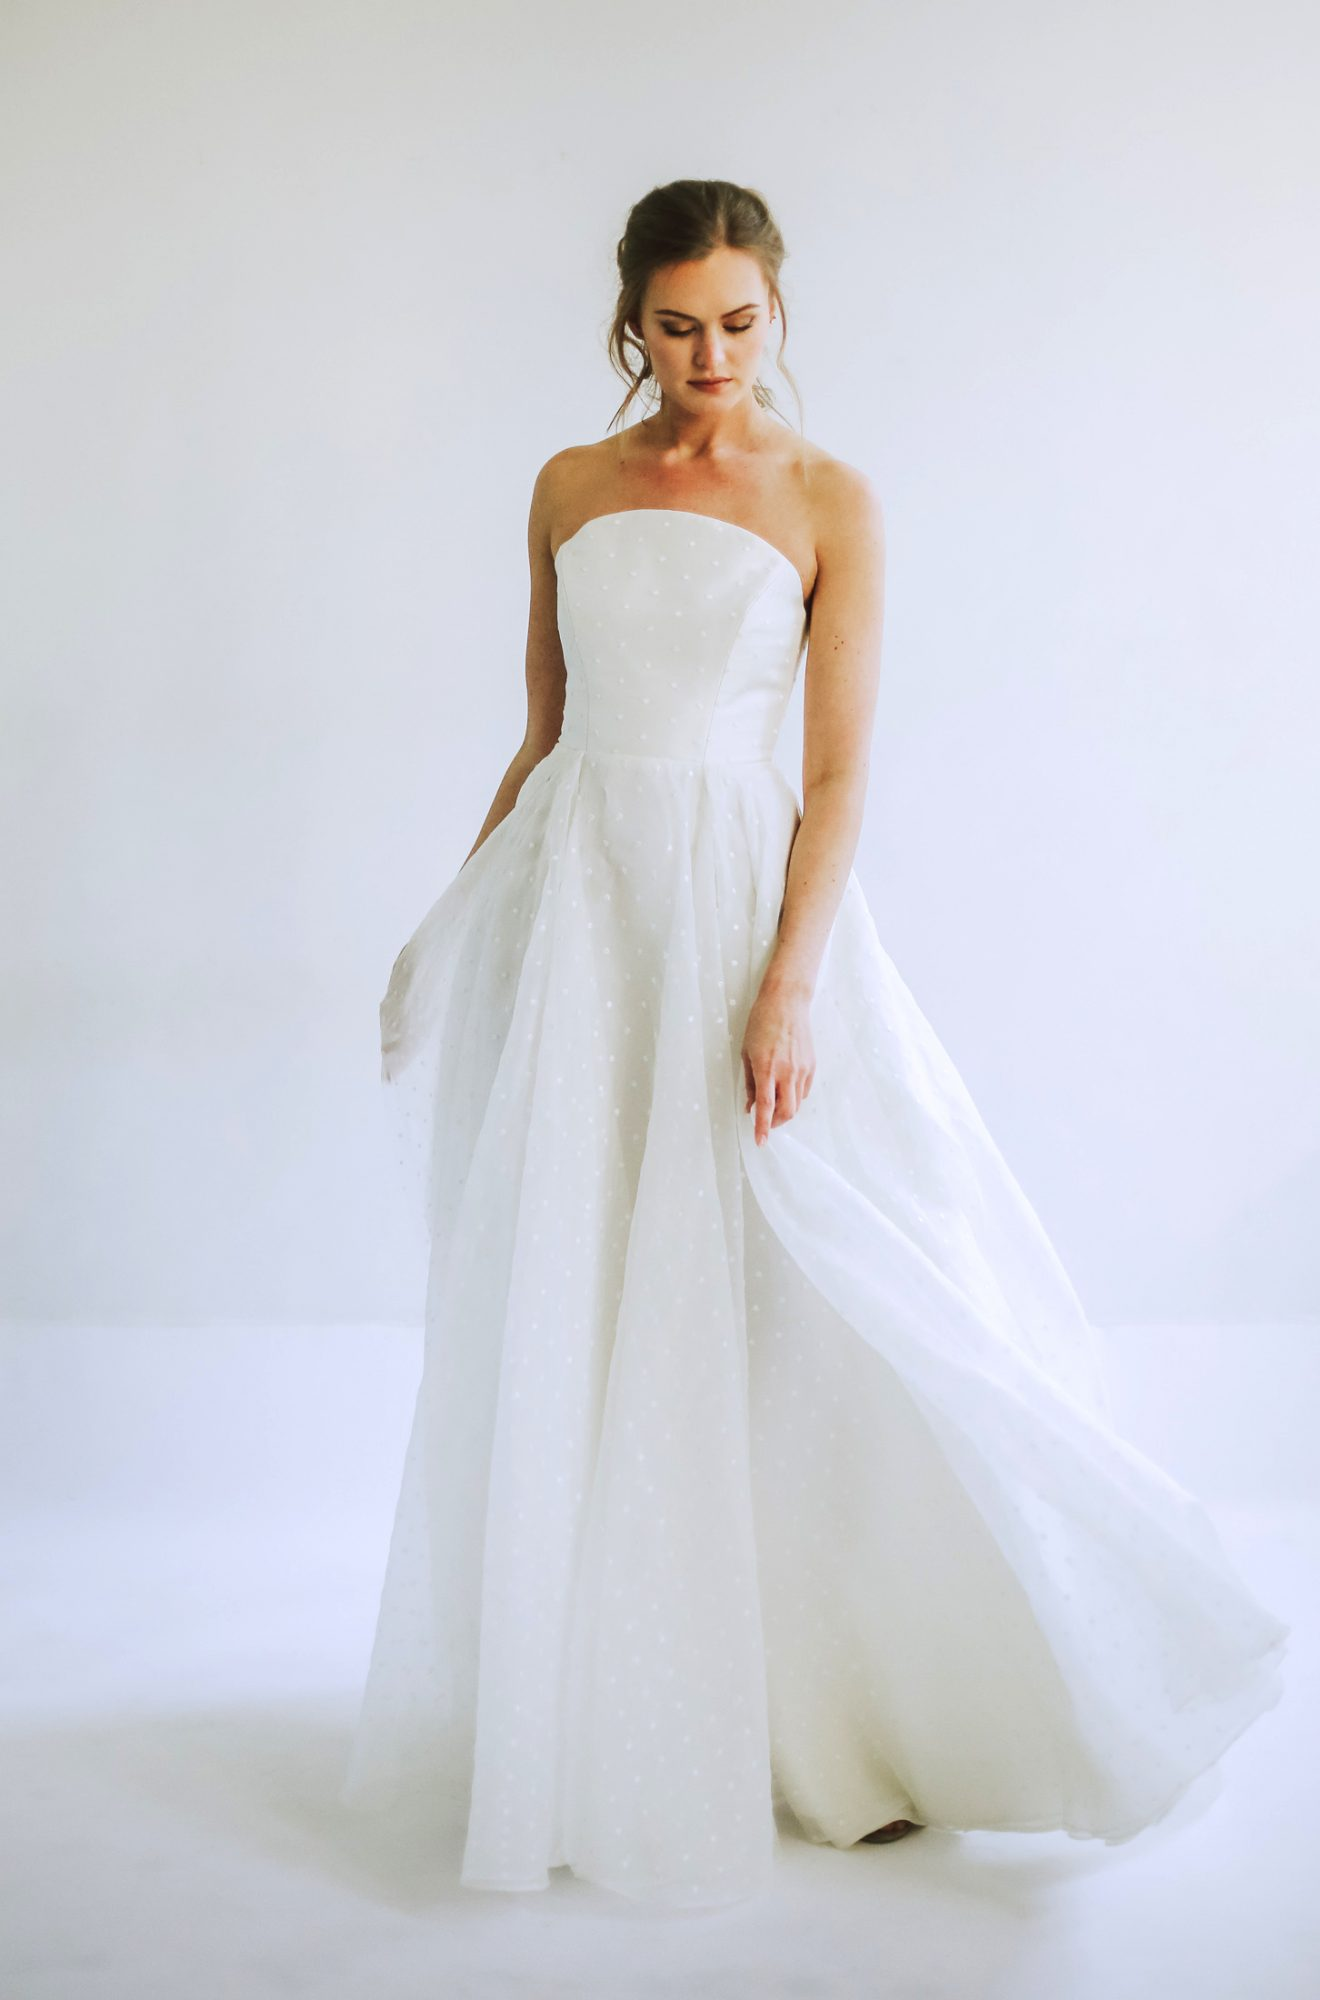 leanna marshall strapless ball gown dotted sheet overlay wedding dress spring 2020